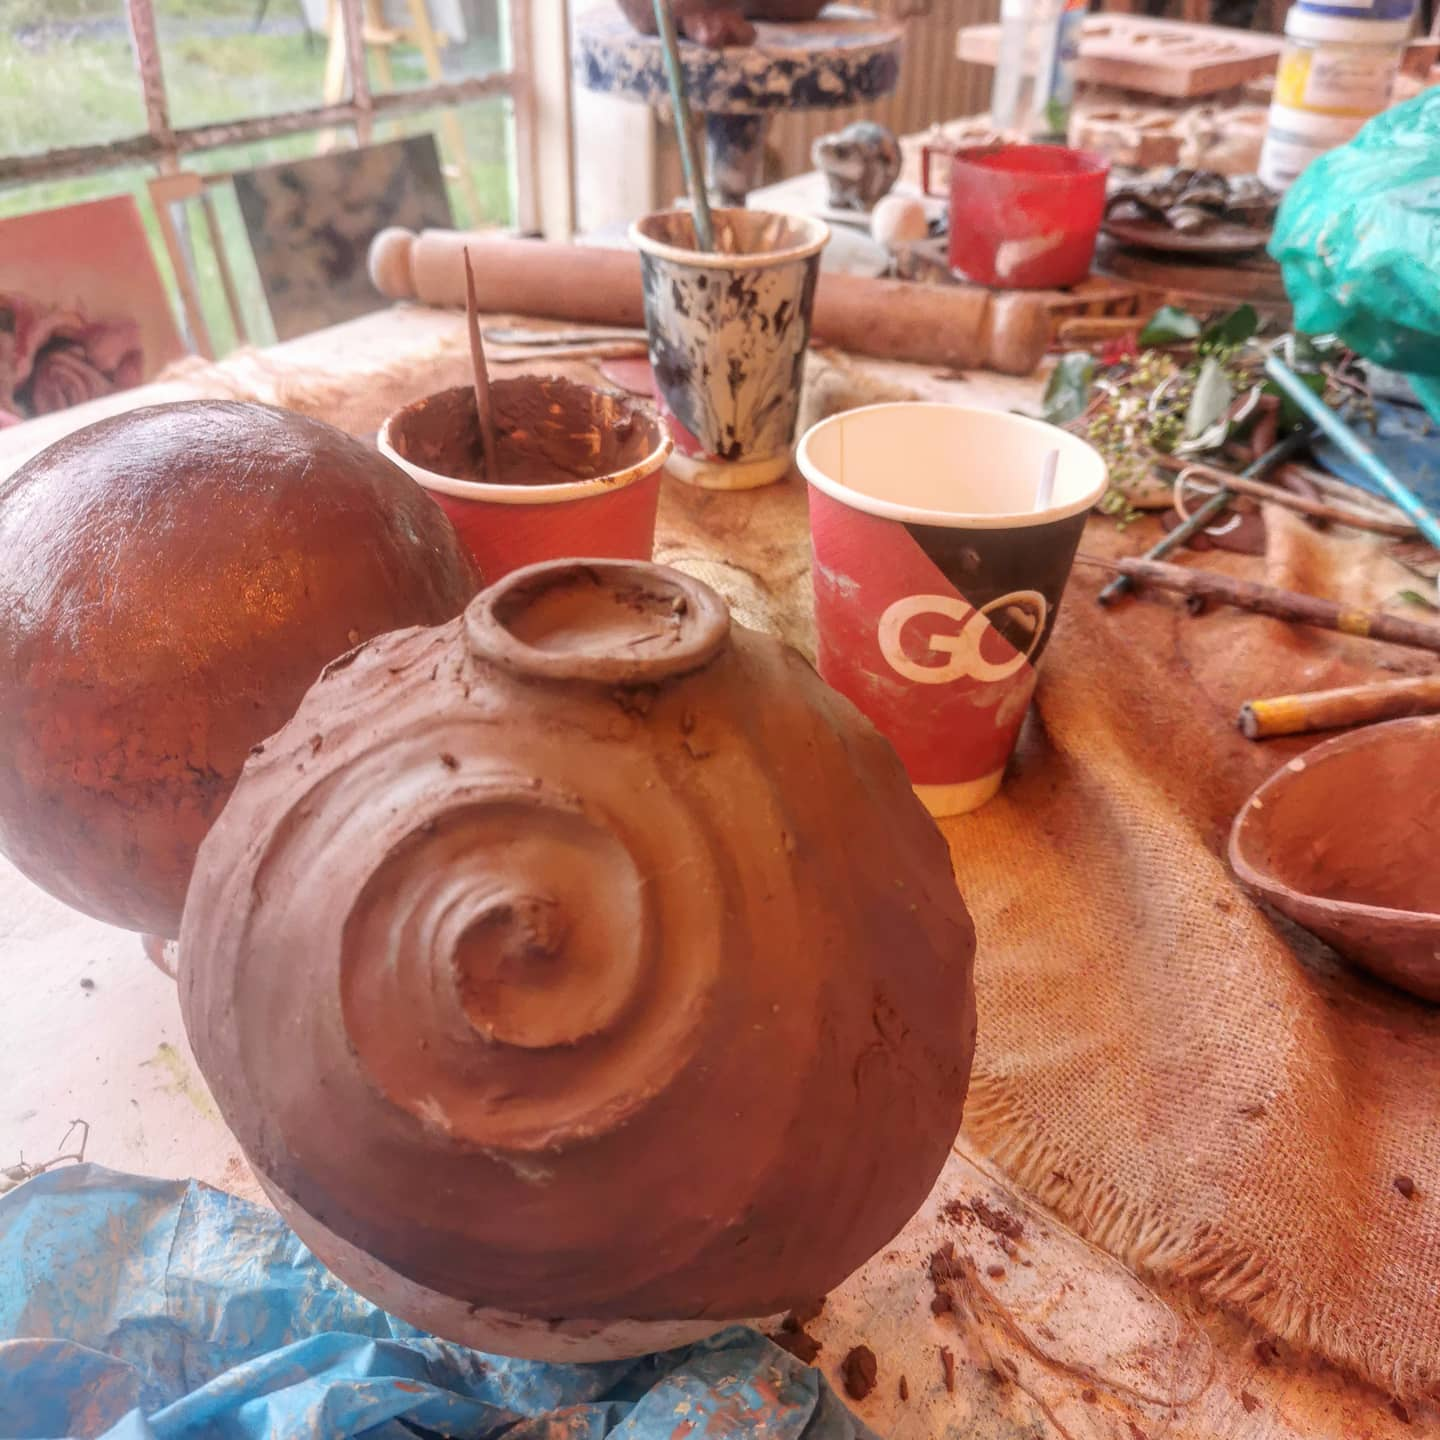 Happy Pottery Workshop day #chestercreatives #potterychester